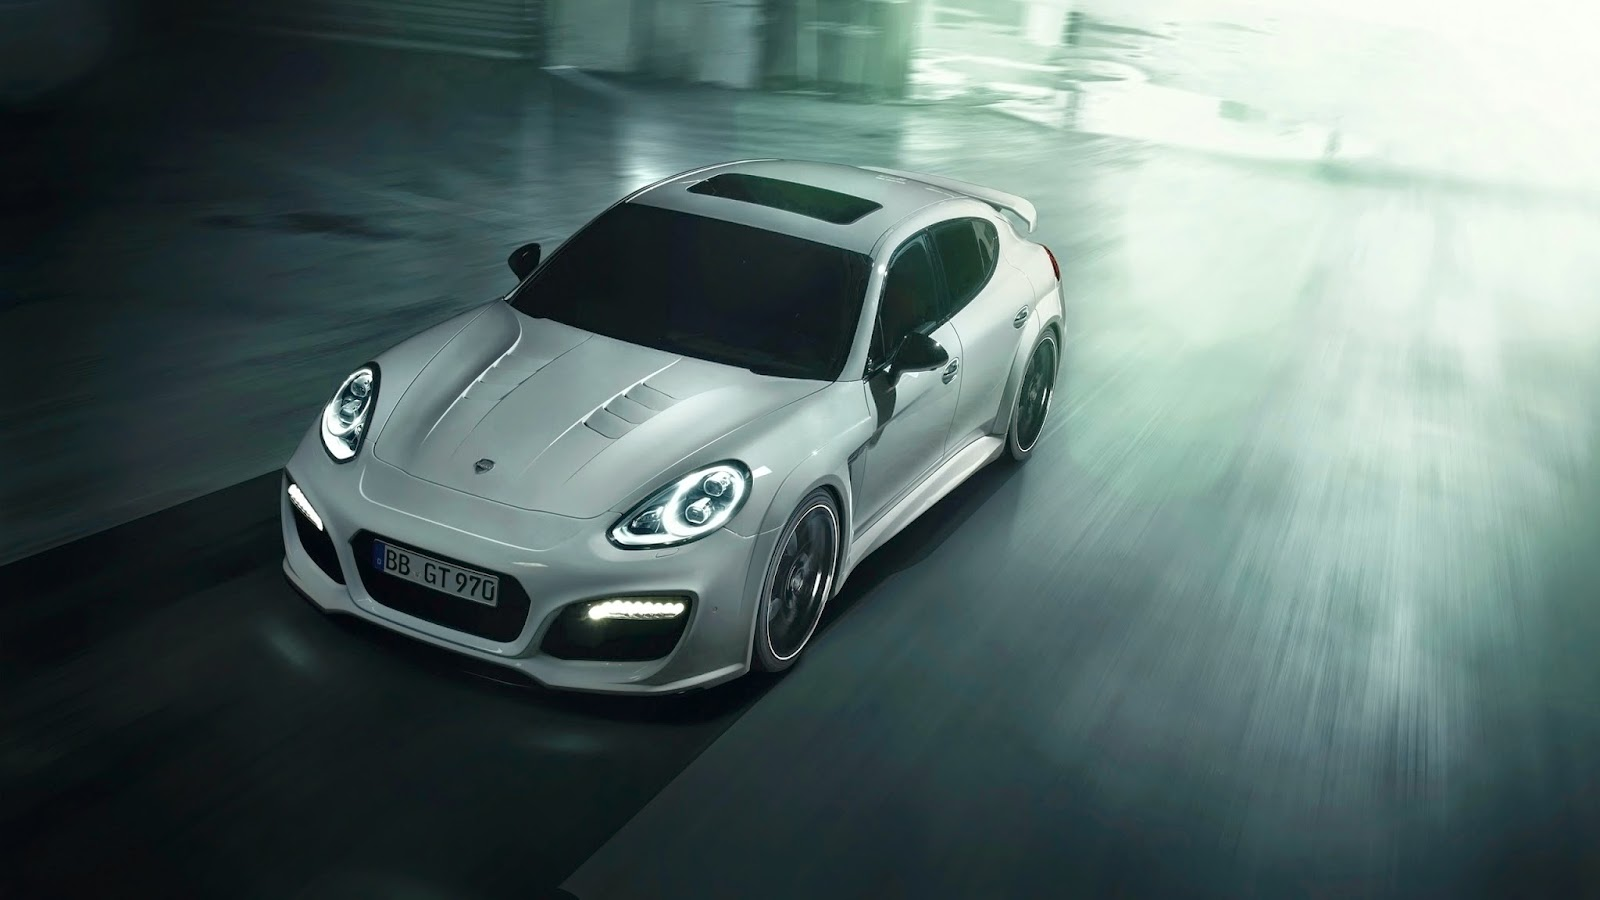 Porsche Panamera hd wallpaper HD Wallpaper with cars   JokerCars 1600x900